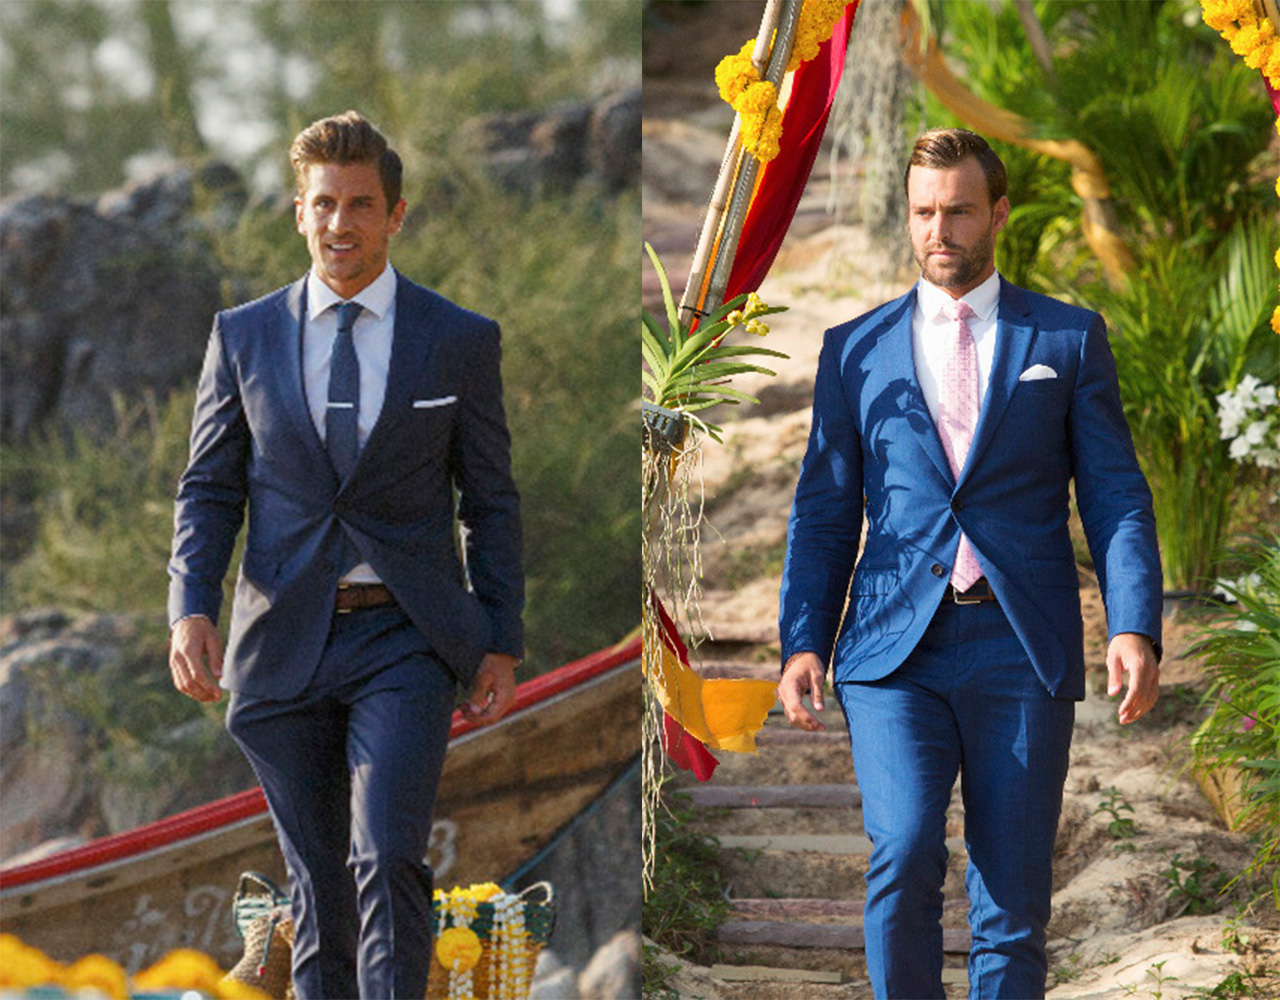 the bachelorette jordan rodgers vs robby hayes jojo fletcher